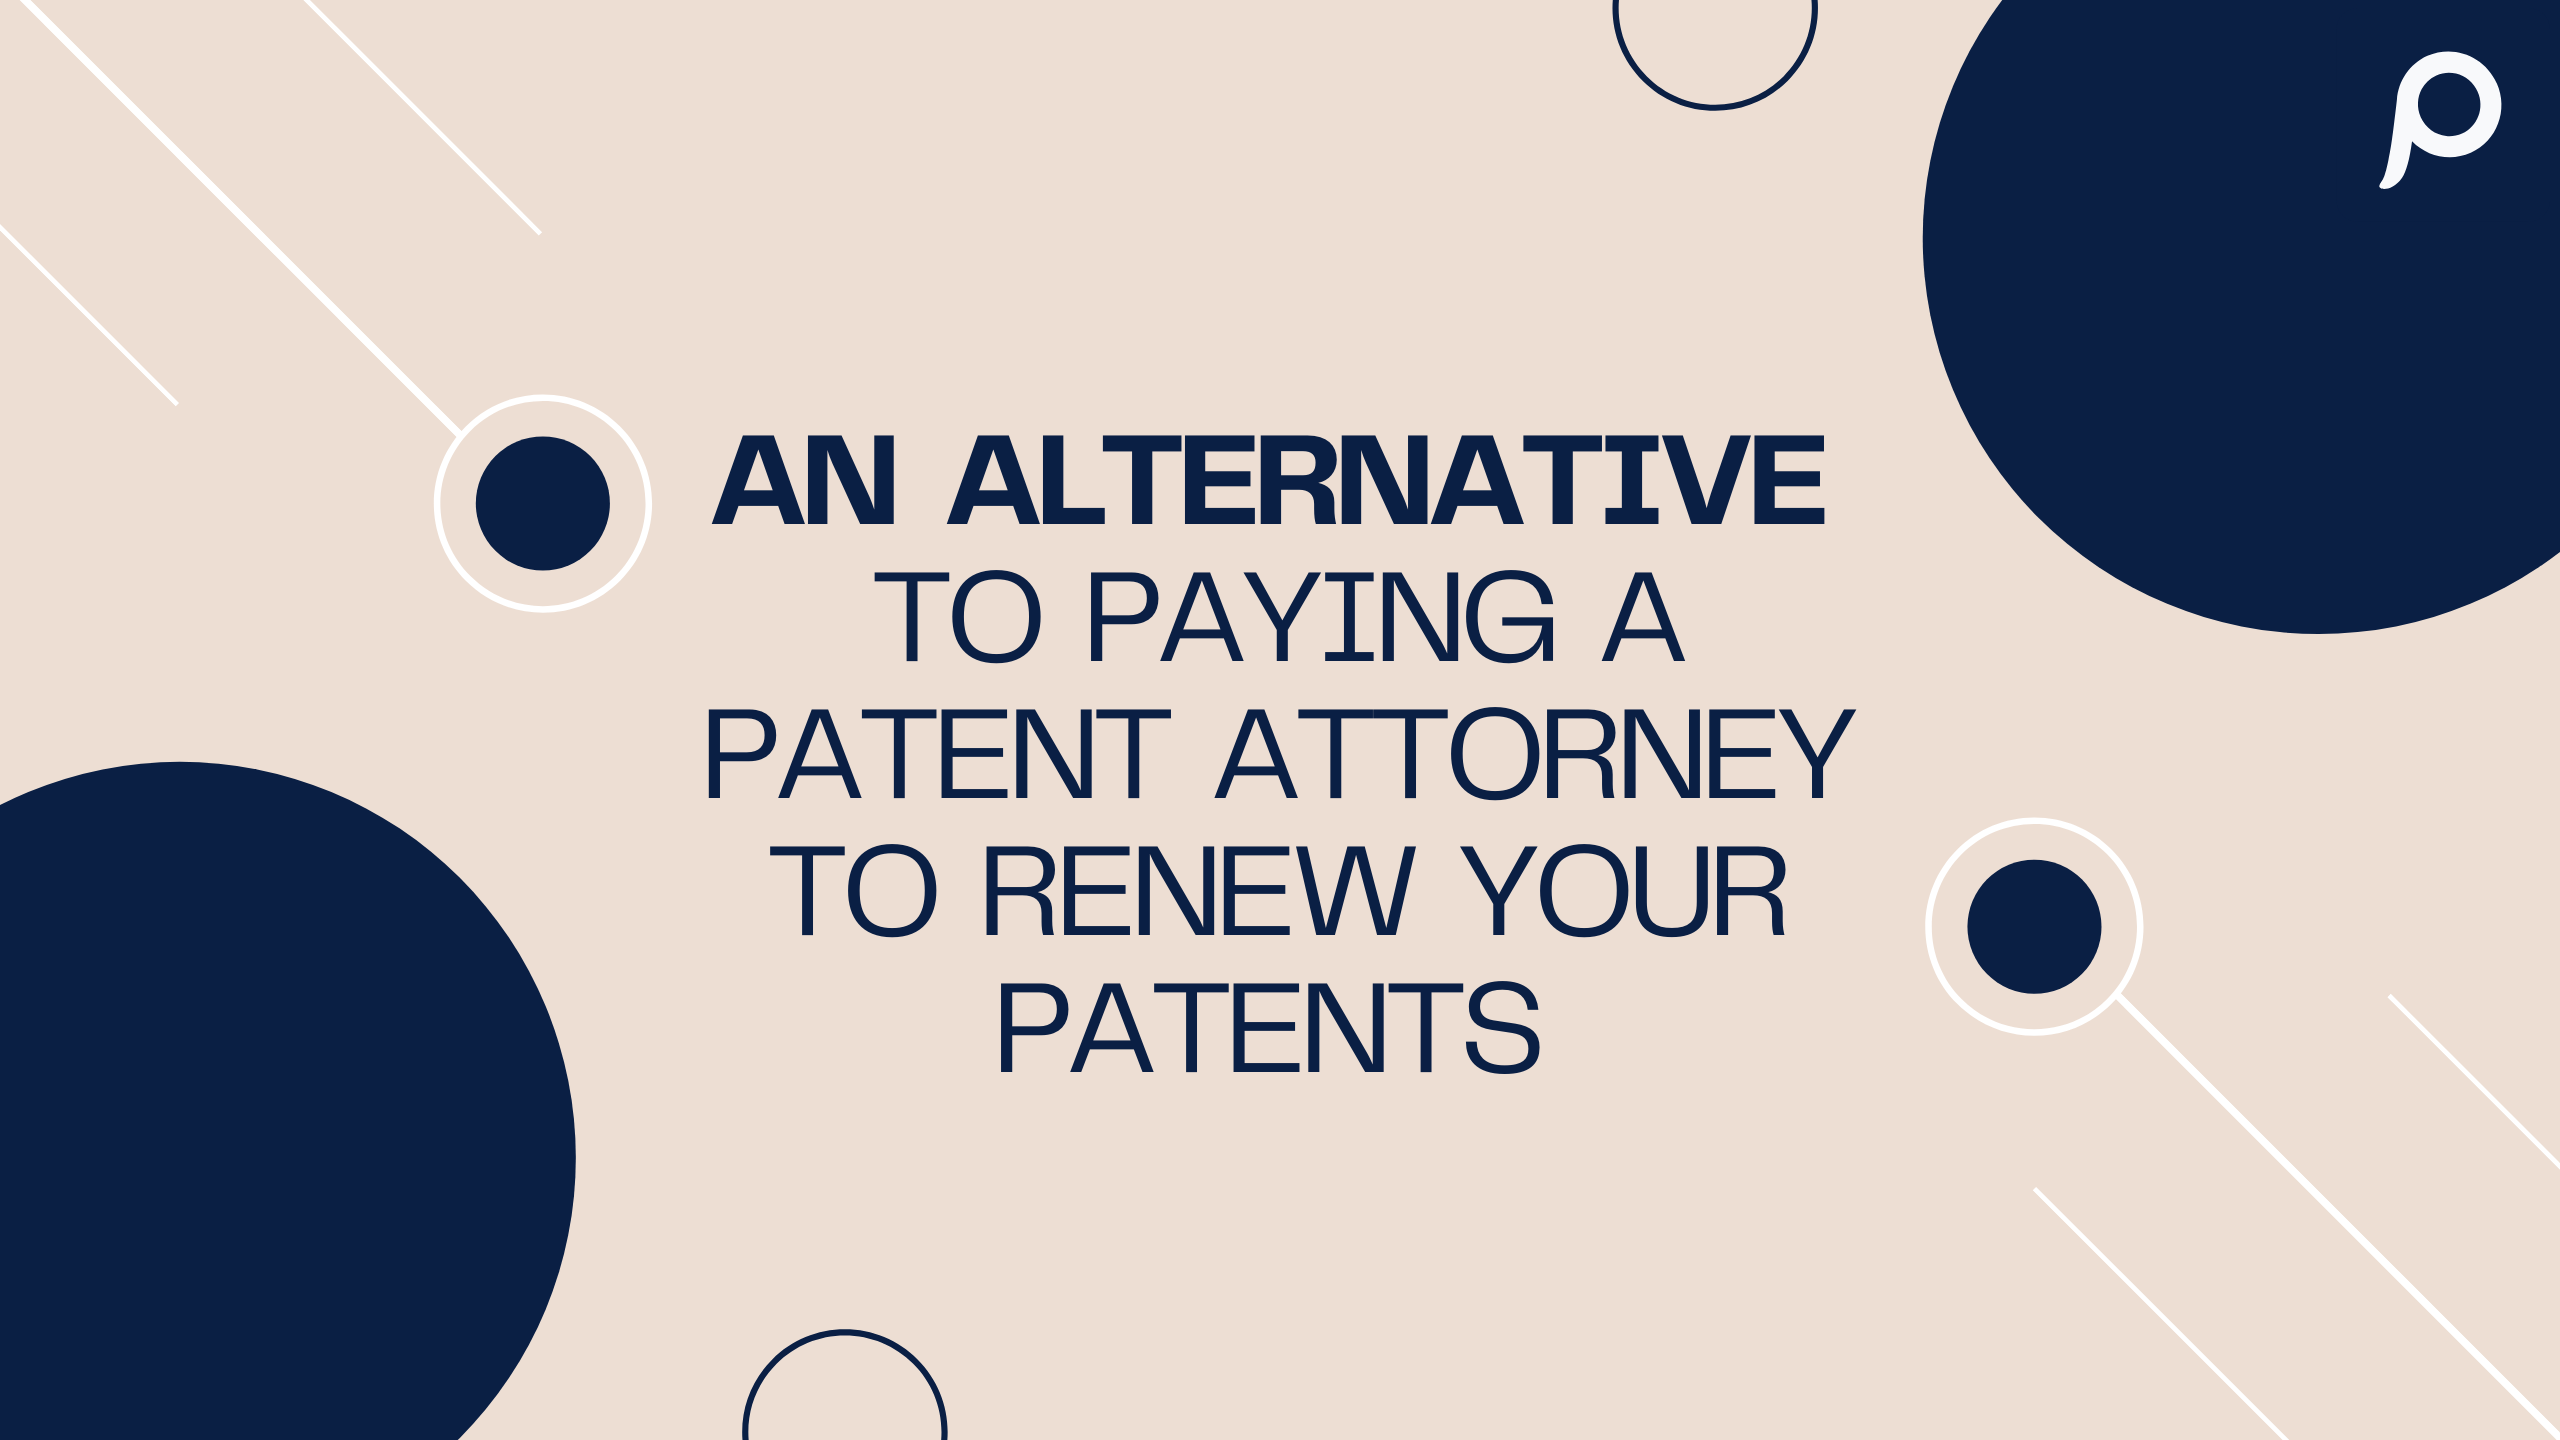 An alternative to paying a patent attorney to renew your patents